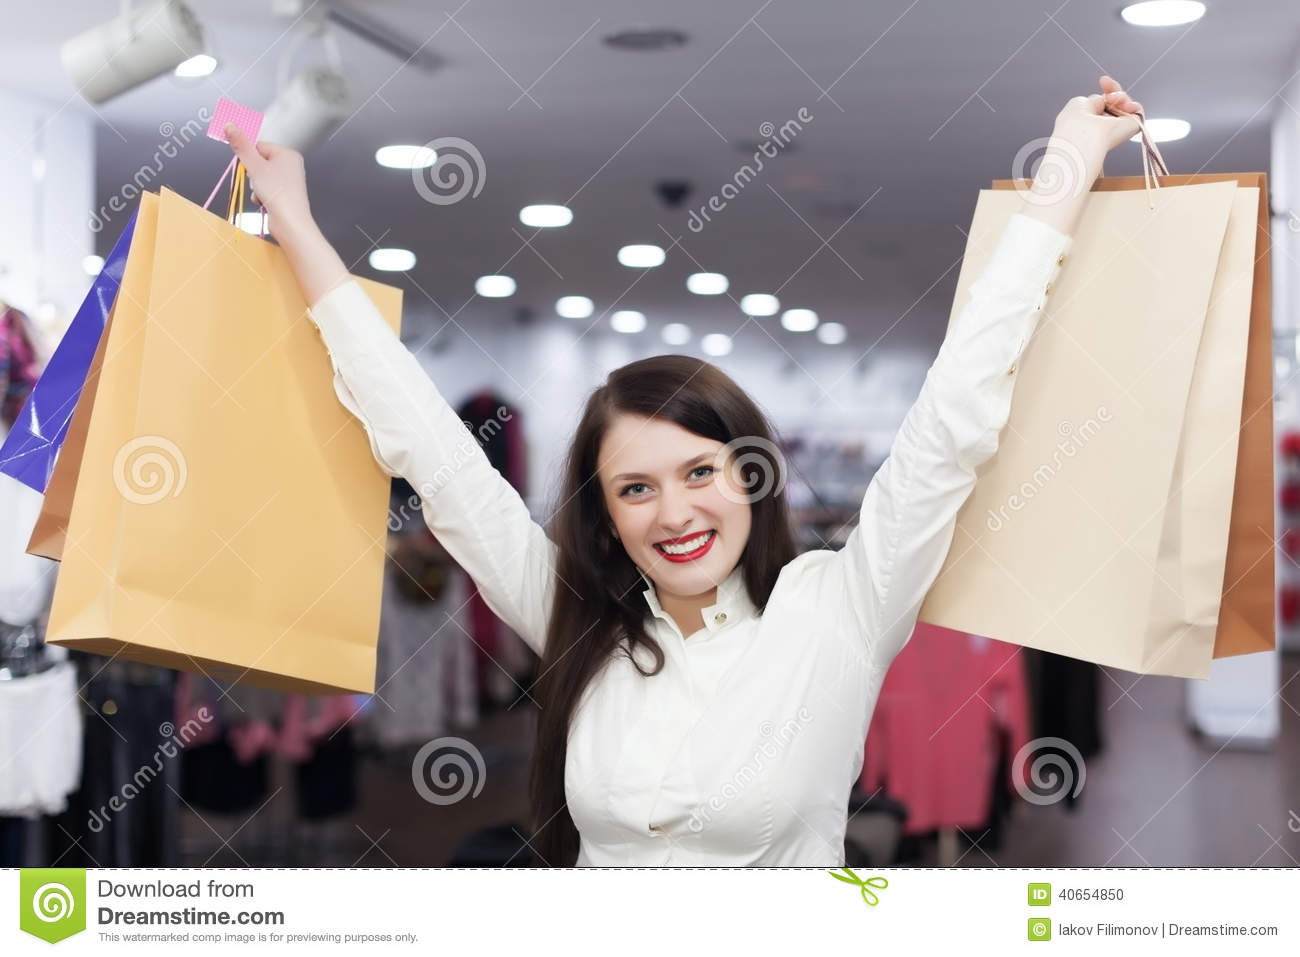 Female Customer With Shopping Bags Stock Photo - Image: 40654850